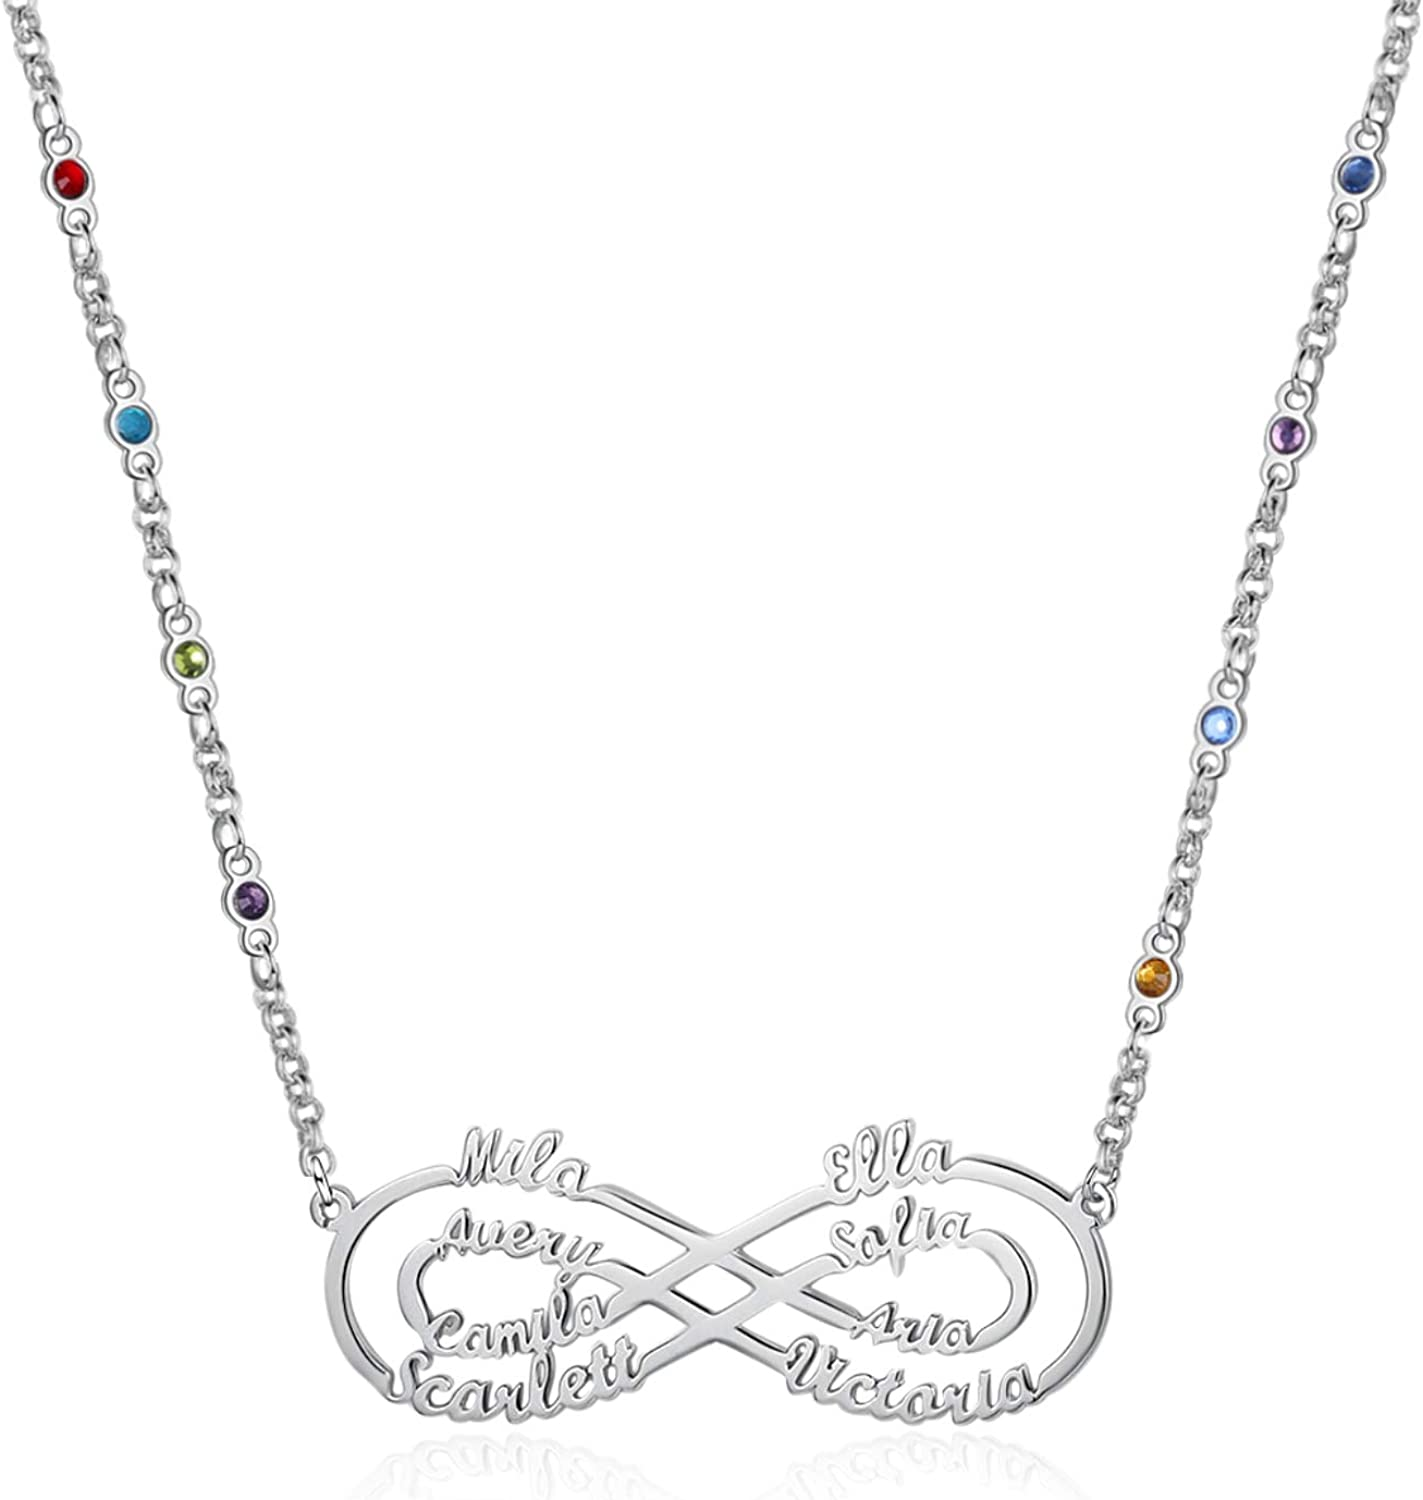 Gemszoo Personalized Infinity Necklace with latest Dallas Mall Simulated Birthstone